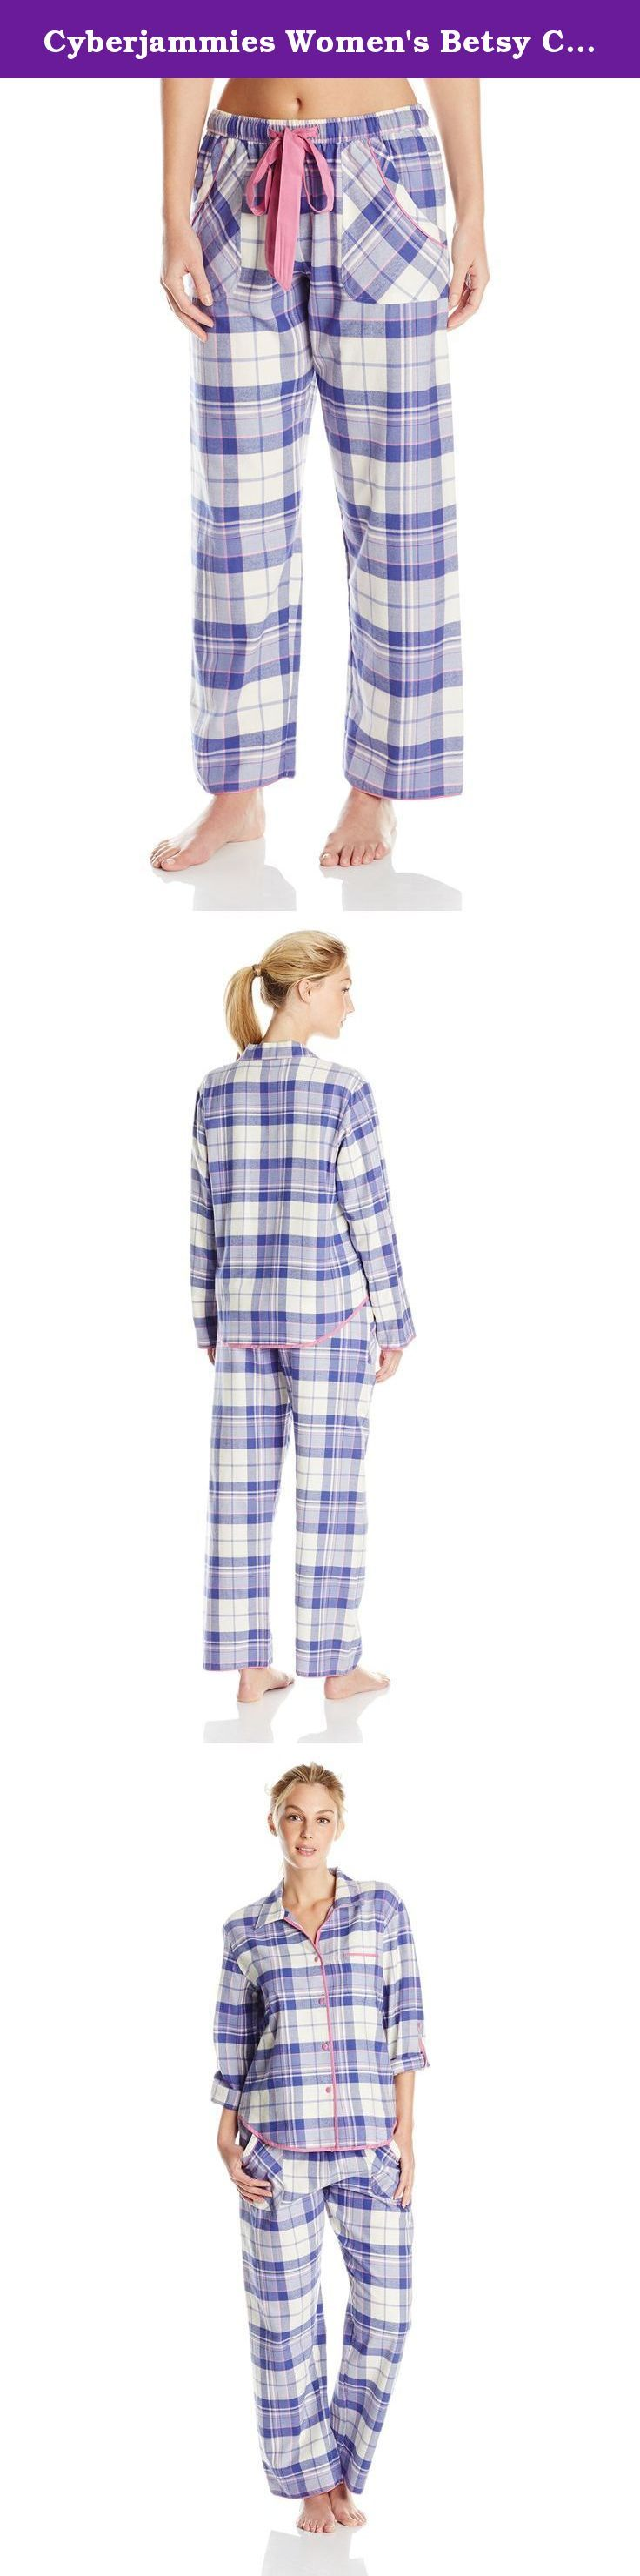 Cyberjammies Women's Betsy Check Pajama Set, Purple Mix, 12/Large. Cyberjammies offer exceptional quality nightwear and lounge wear, too good to sleep in. Our fabrics are extra soft and specifically designed for comfort in bed. Our colors, trims and styling are fun and different. Fit is comfortable, yet feminine to ensure you look stylish in the bedroom or on the sofa.